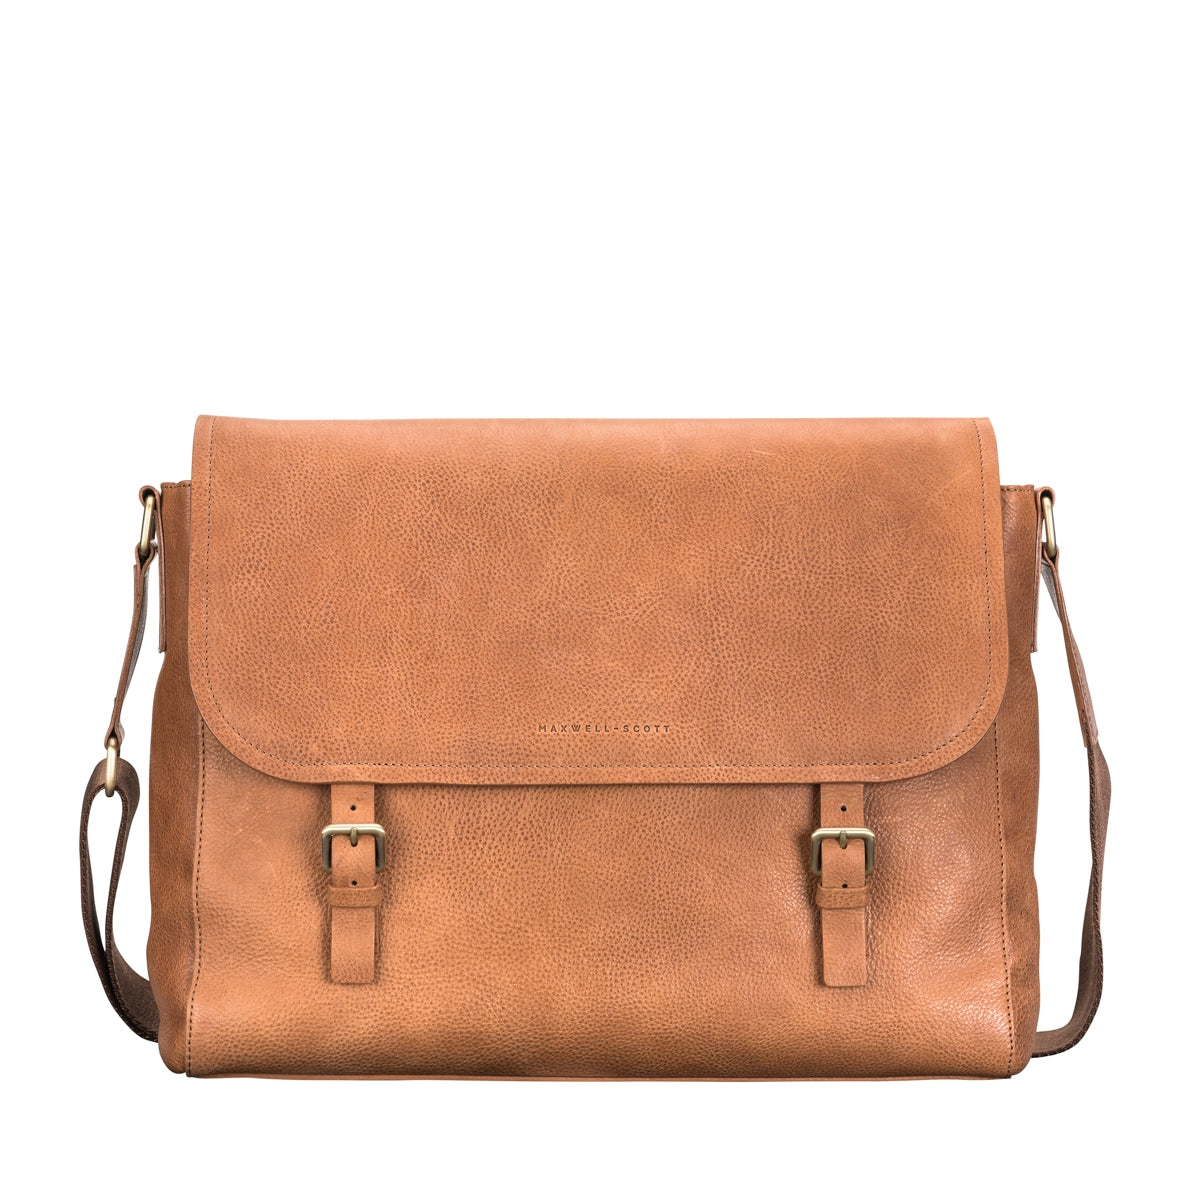 Image 1 of the 'Ravenna' Men's Leather Classic Satchel Bag